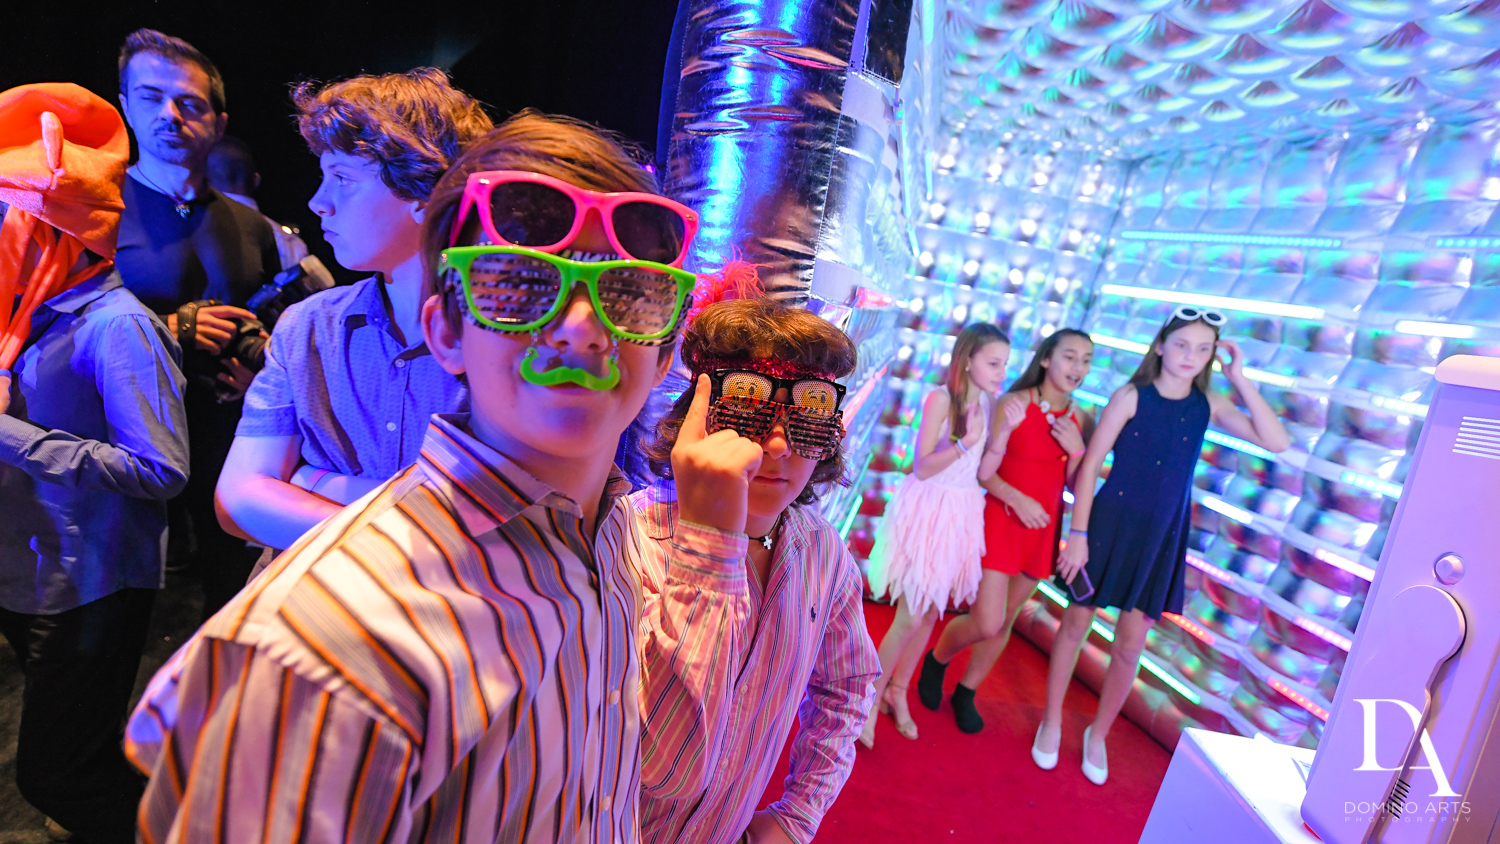 fun party favors at Music Festival Bat Mitzvah at The Fillmore Miami Beach by Domino Arts Photography